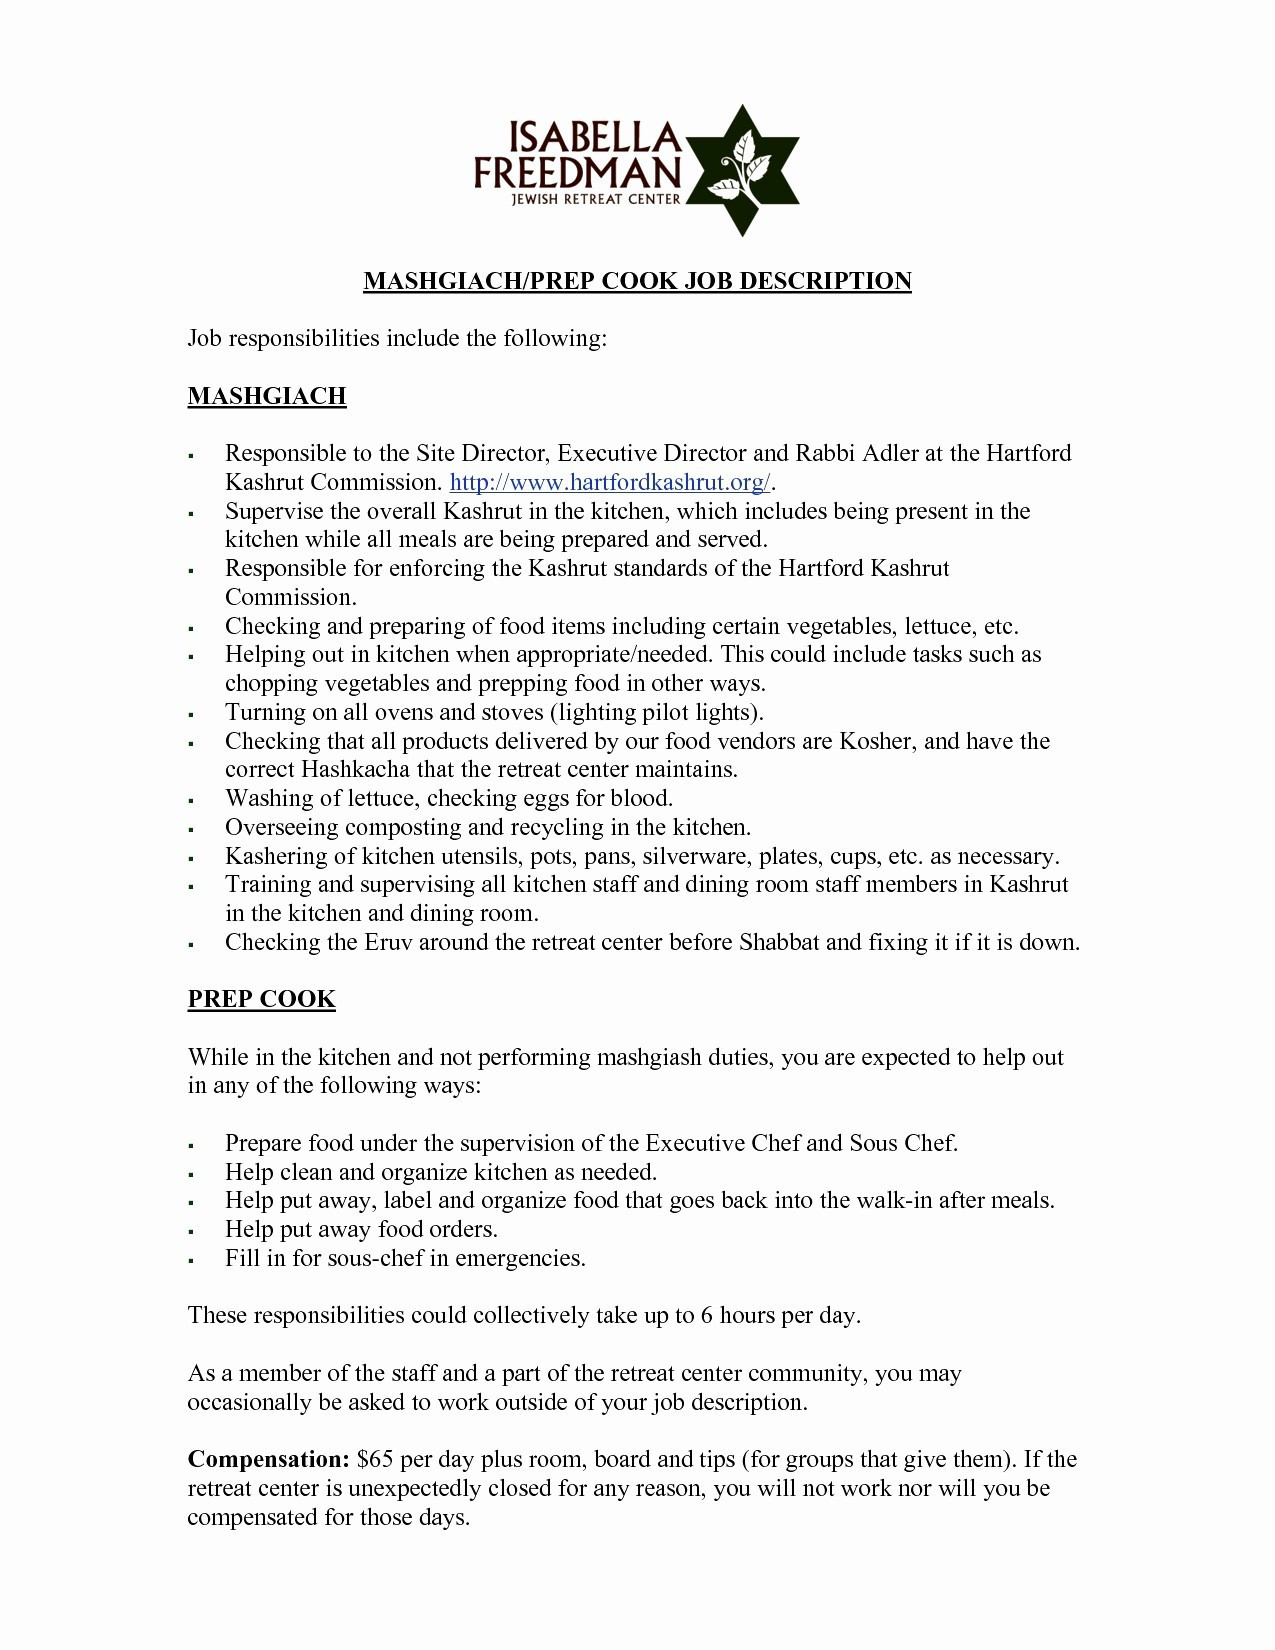 Cover Letter Template Mac - Microsoft Word Cover Letter Template Mac Awesome Word Templates for